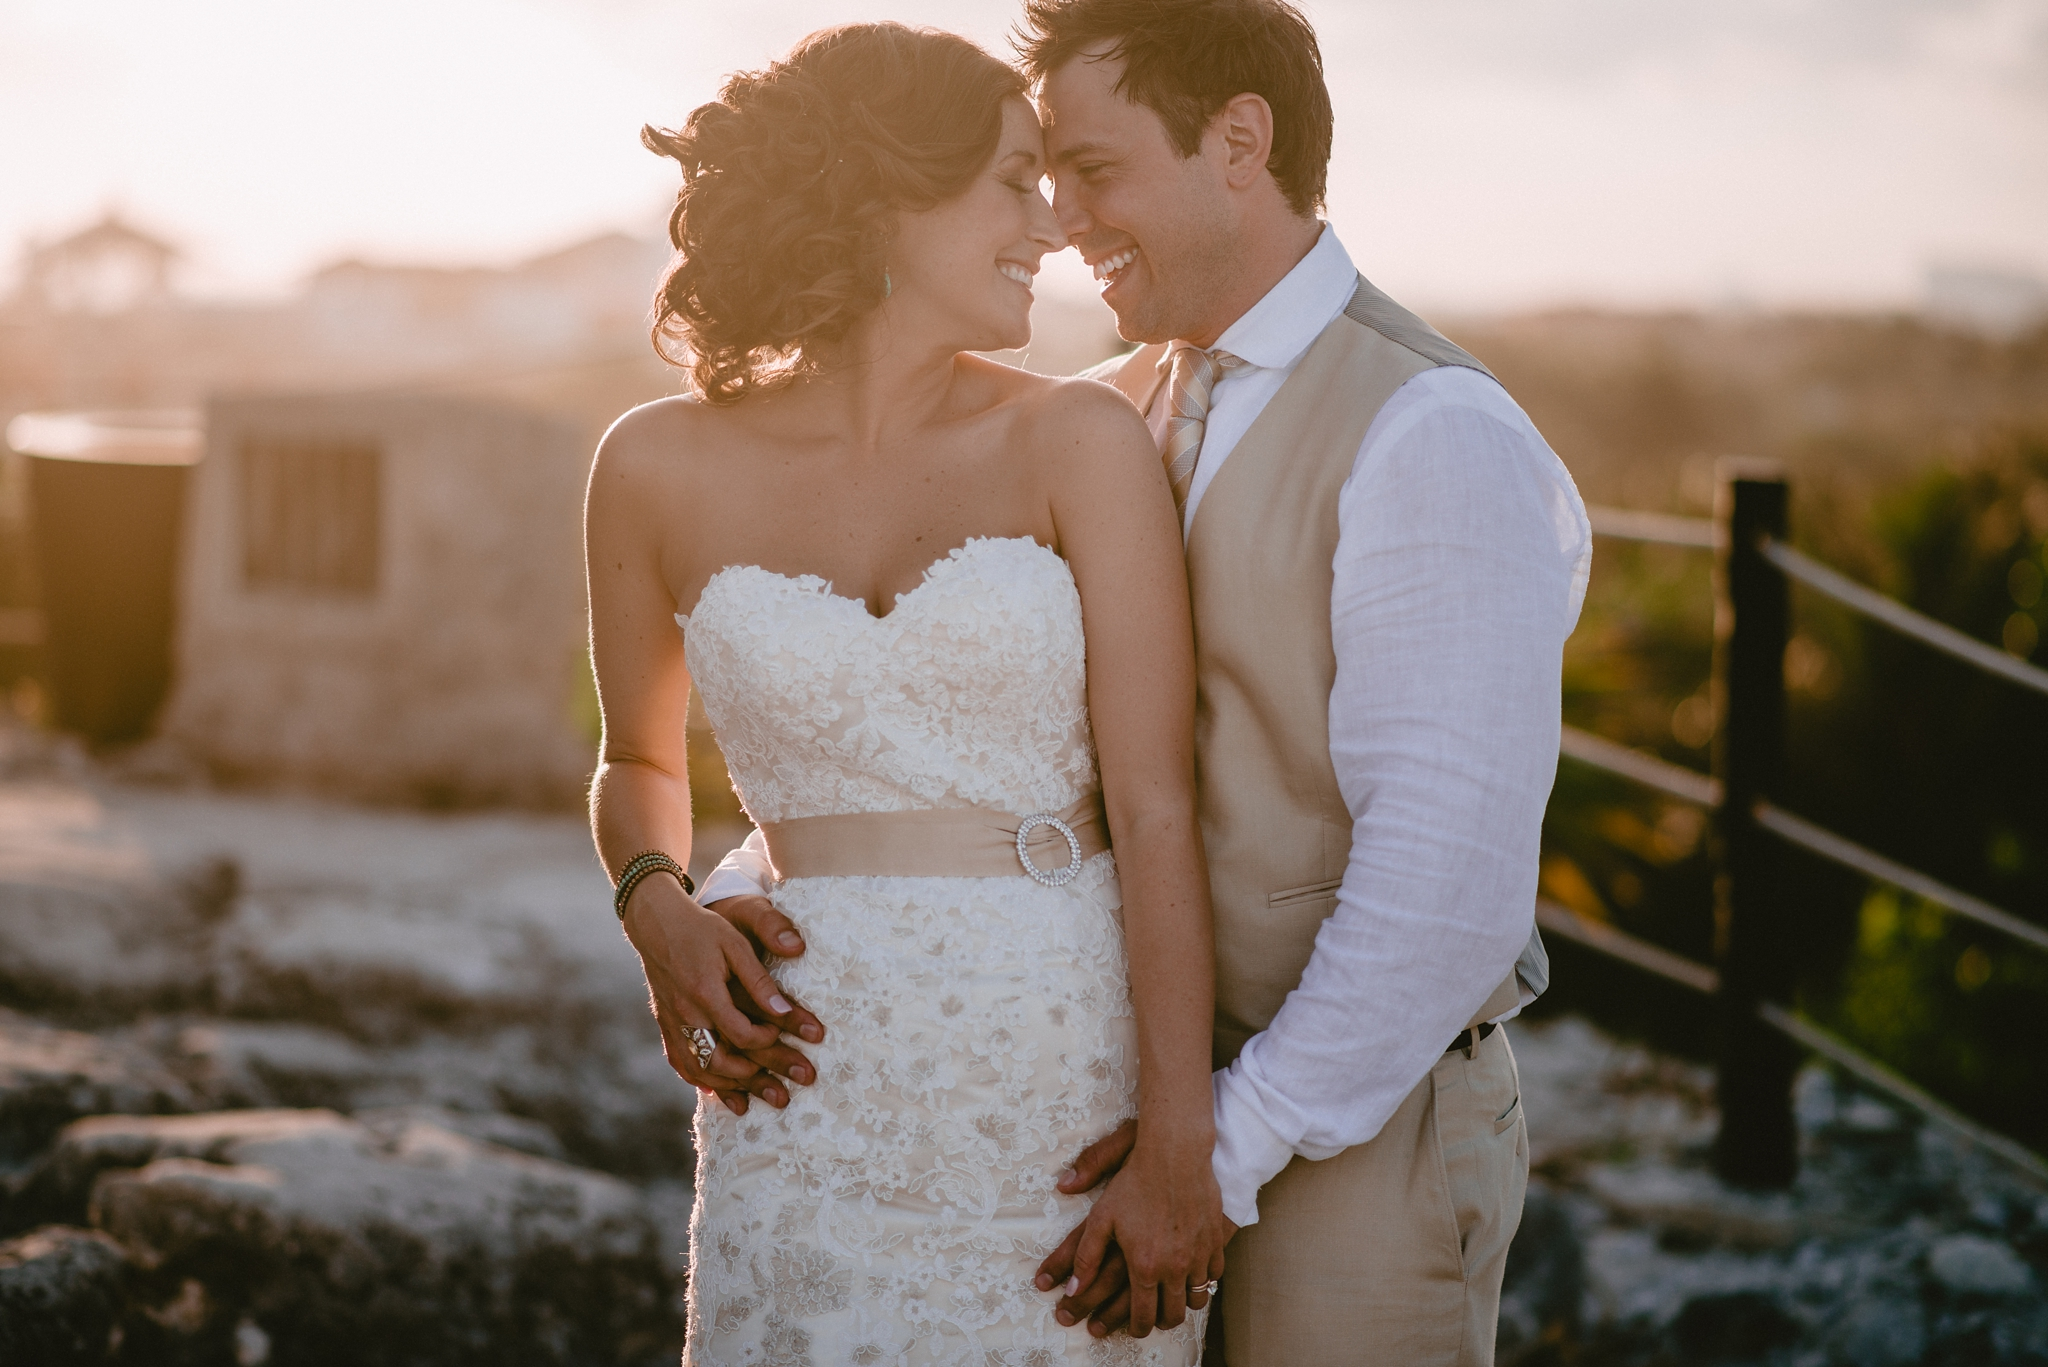 kaihla_tonai_intimate_wedding_elopement_photographer_1158